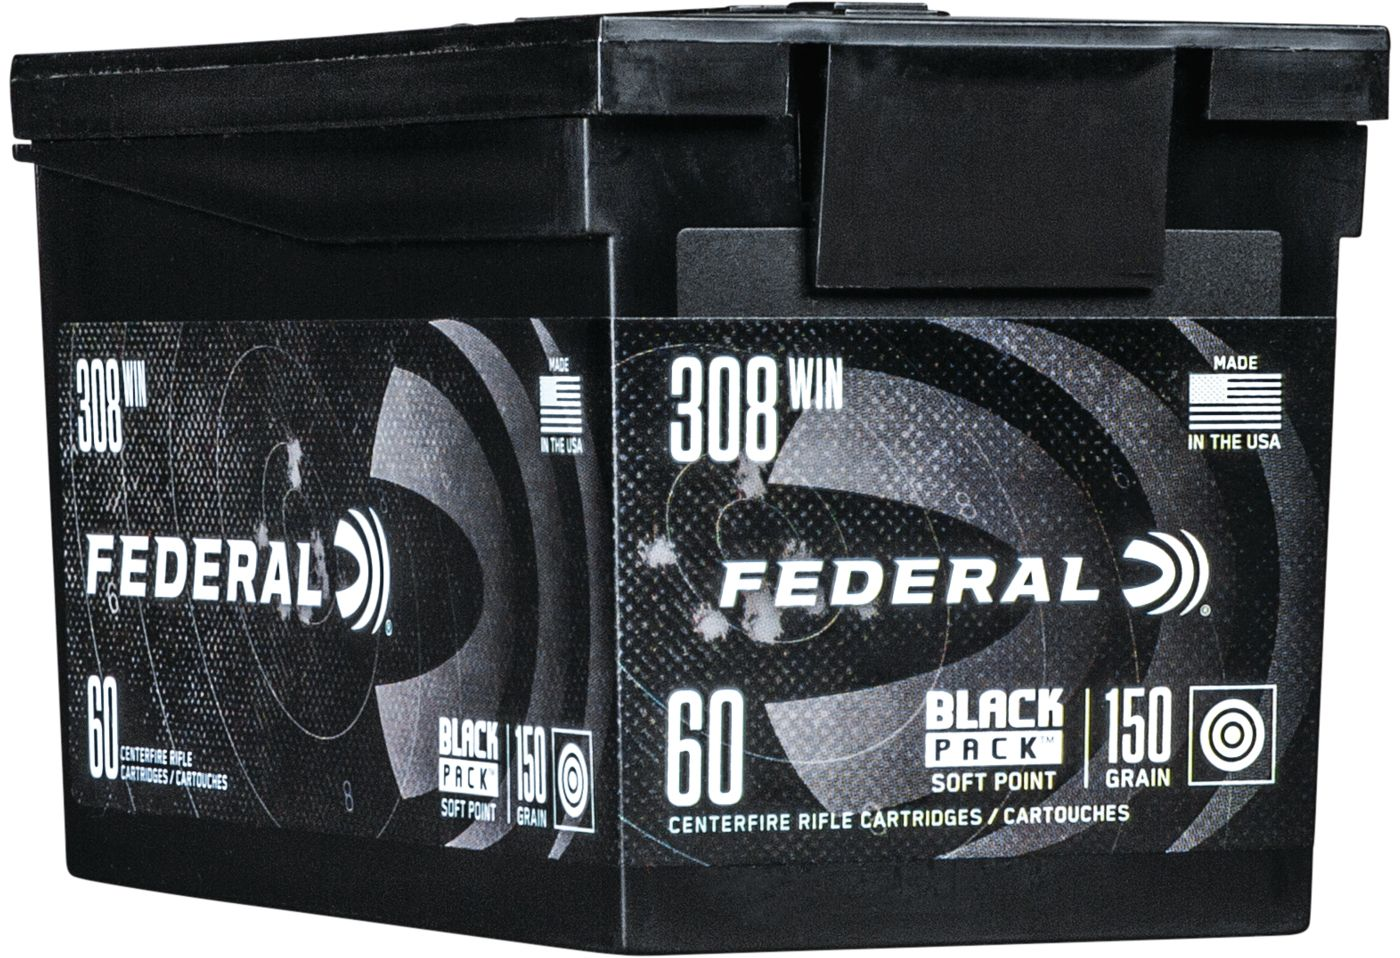 Federal Black Pack Rifle Ammo